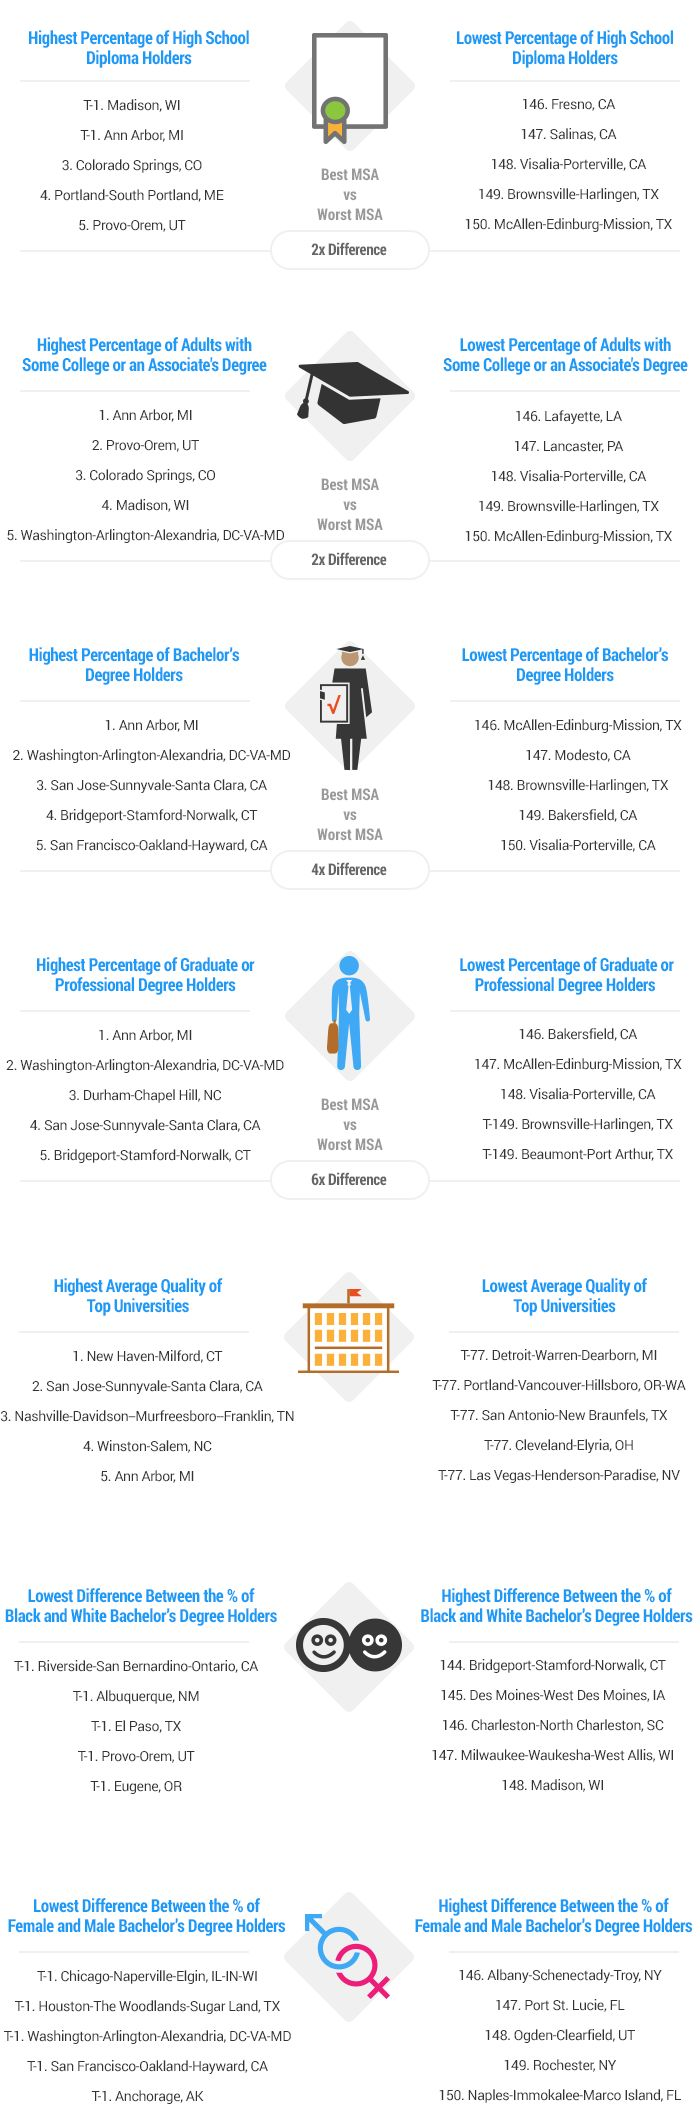 Most-and-Least-Educated-Cities-Artwork